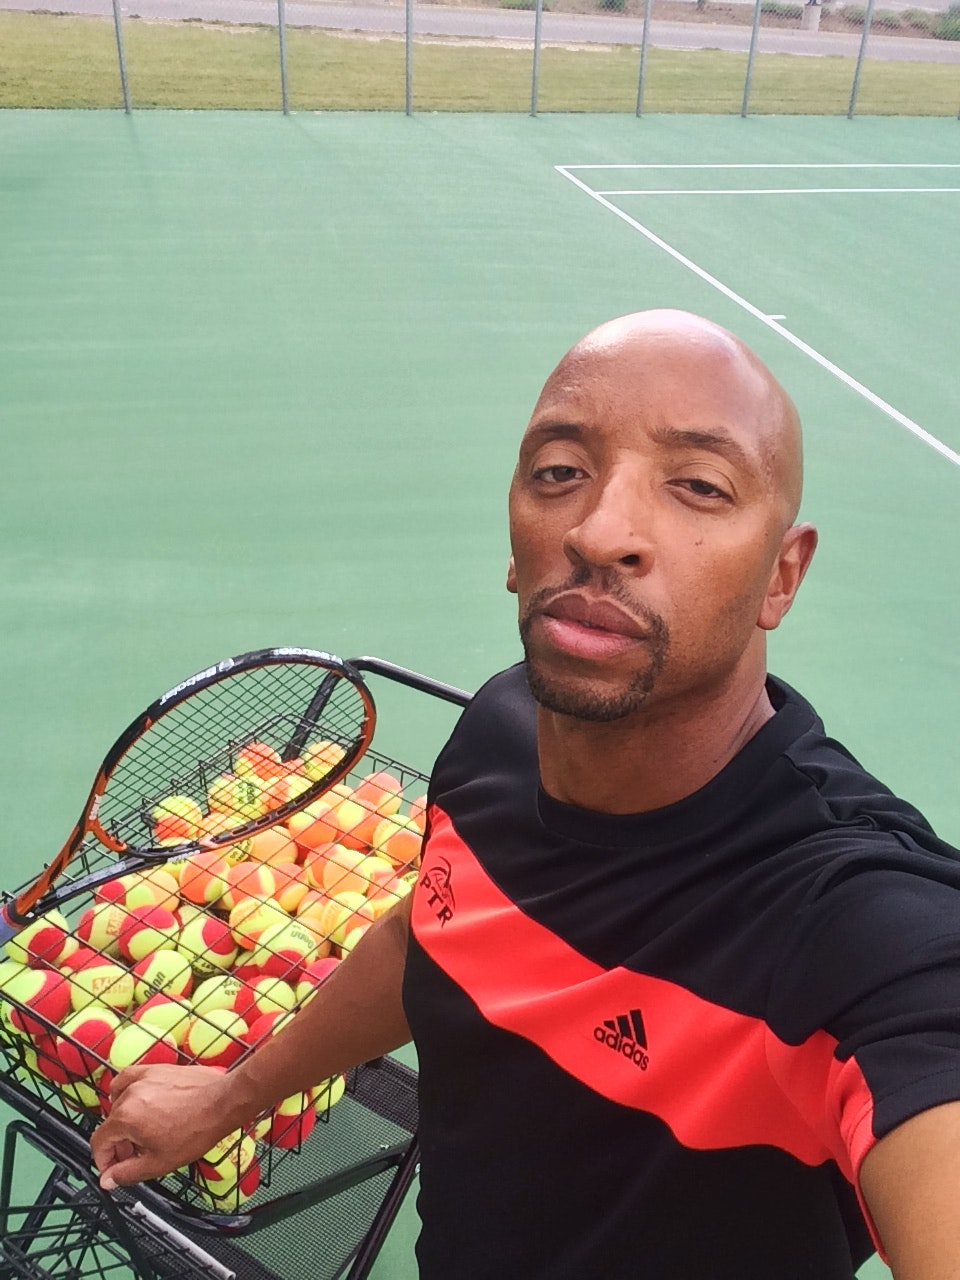 Noel W. teaches tennis lessons in Denver, CO